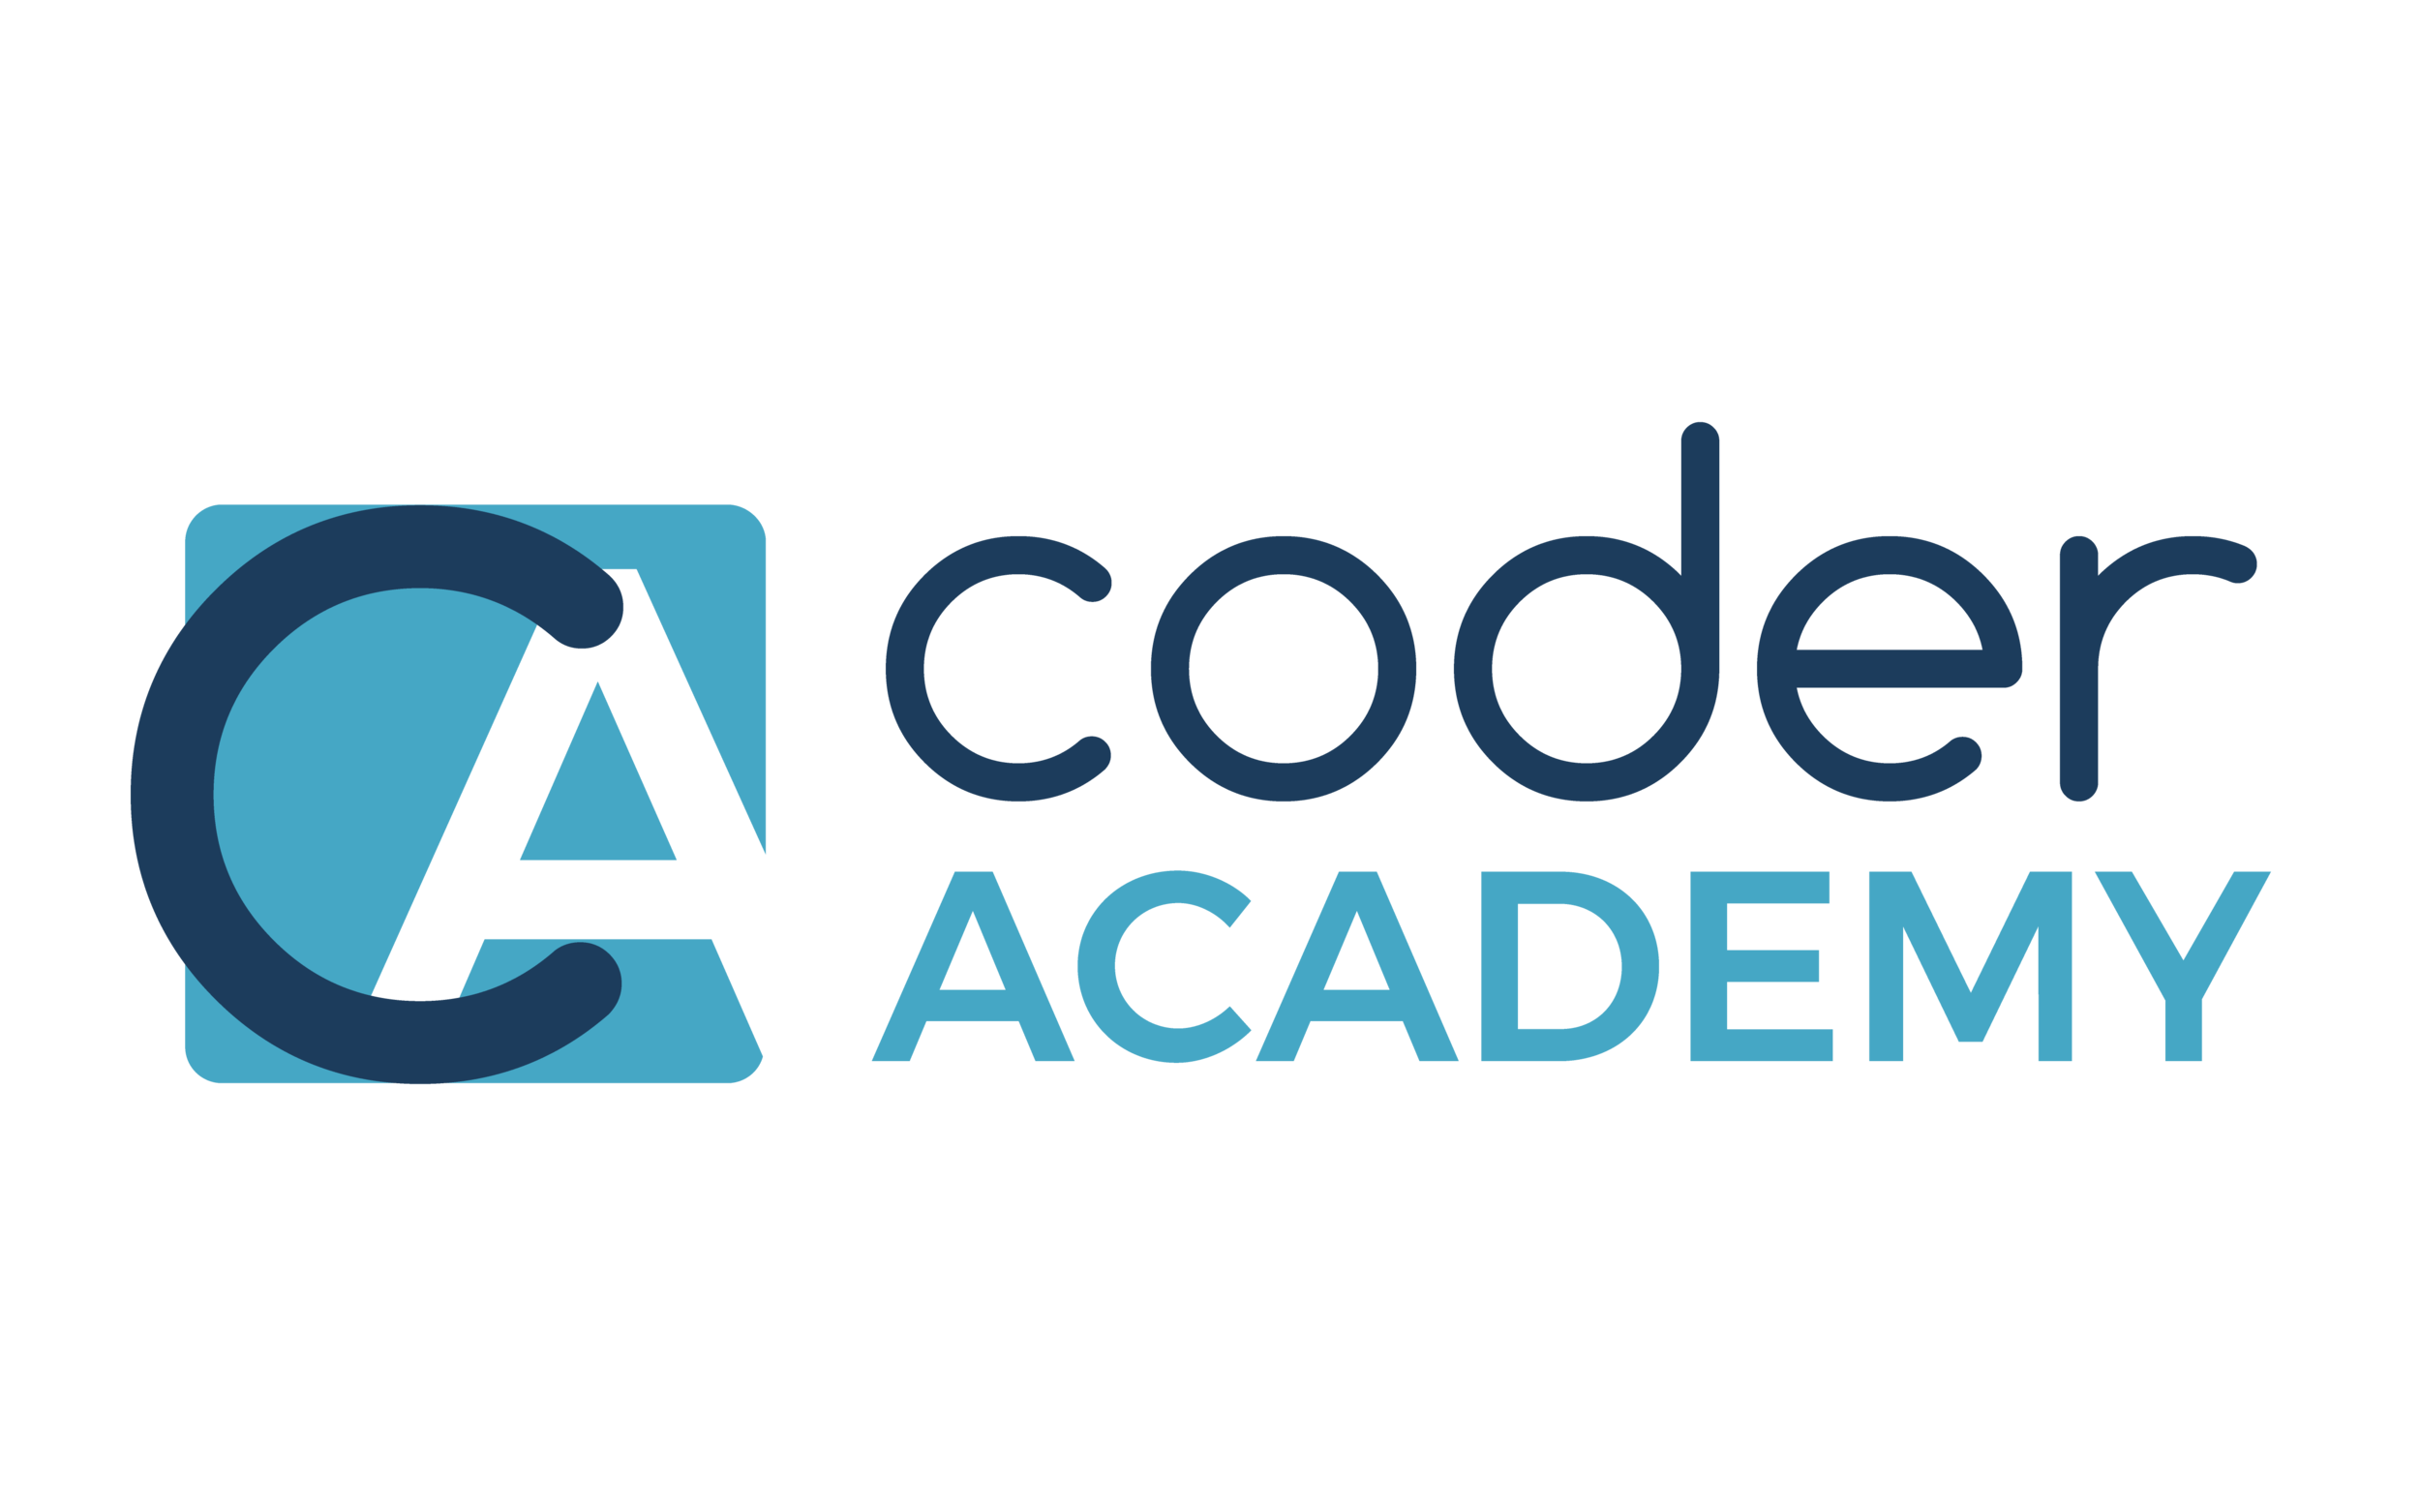 Coder Academy-01.png